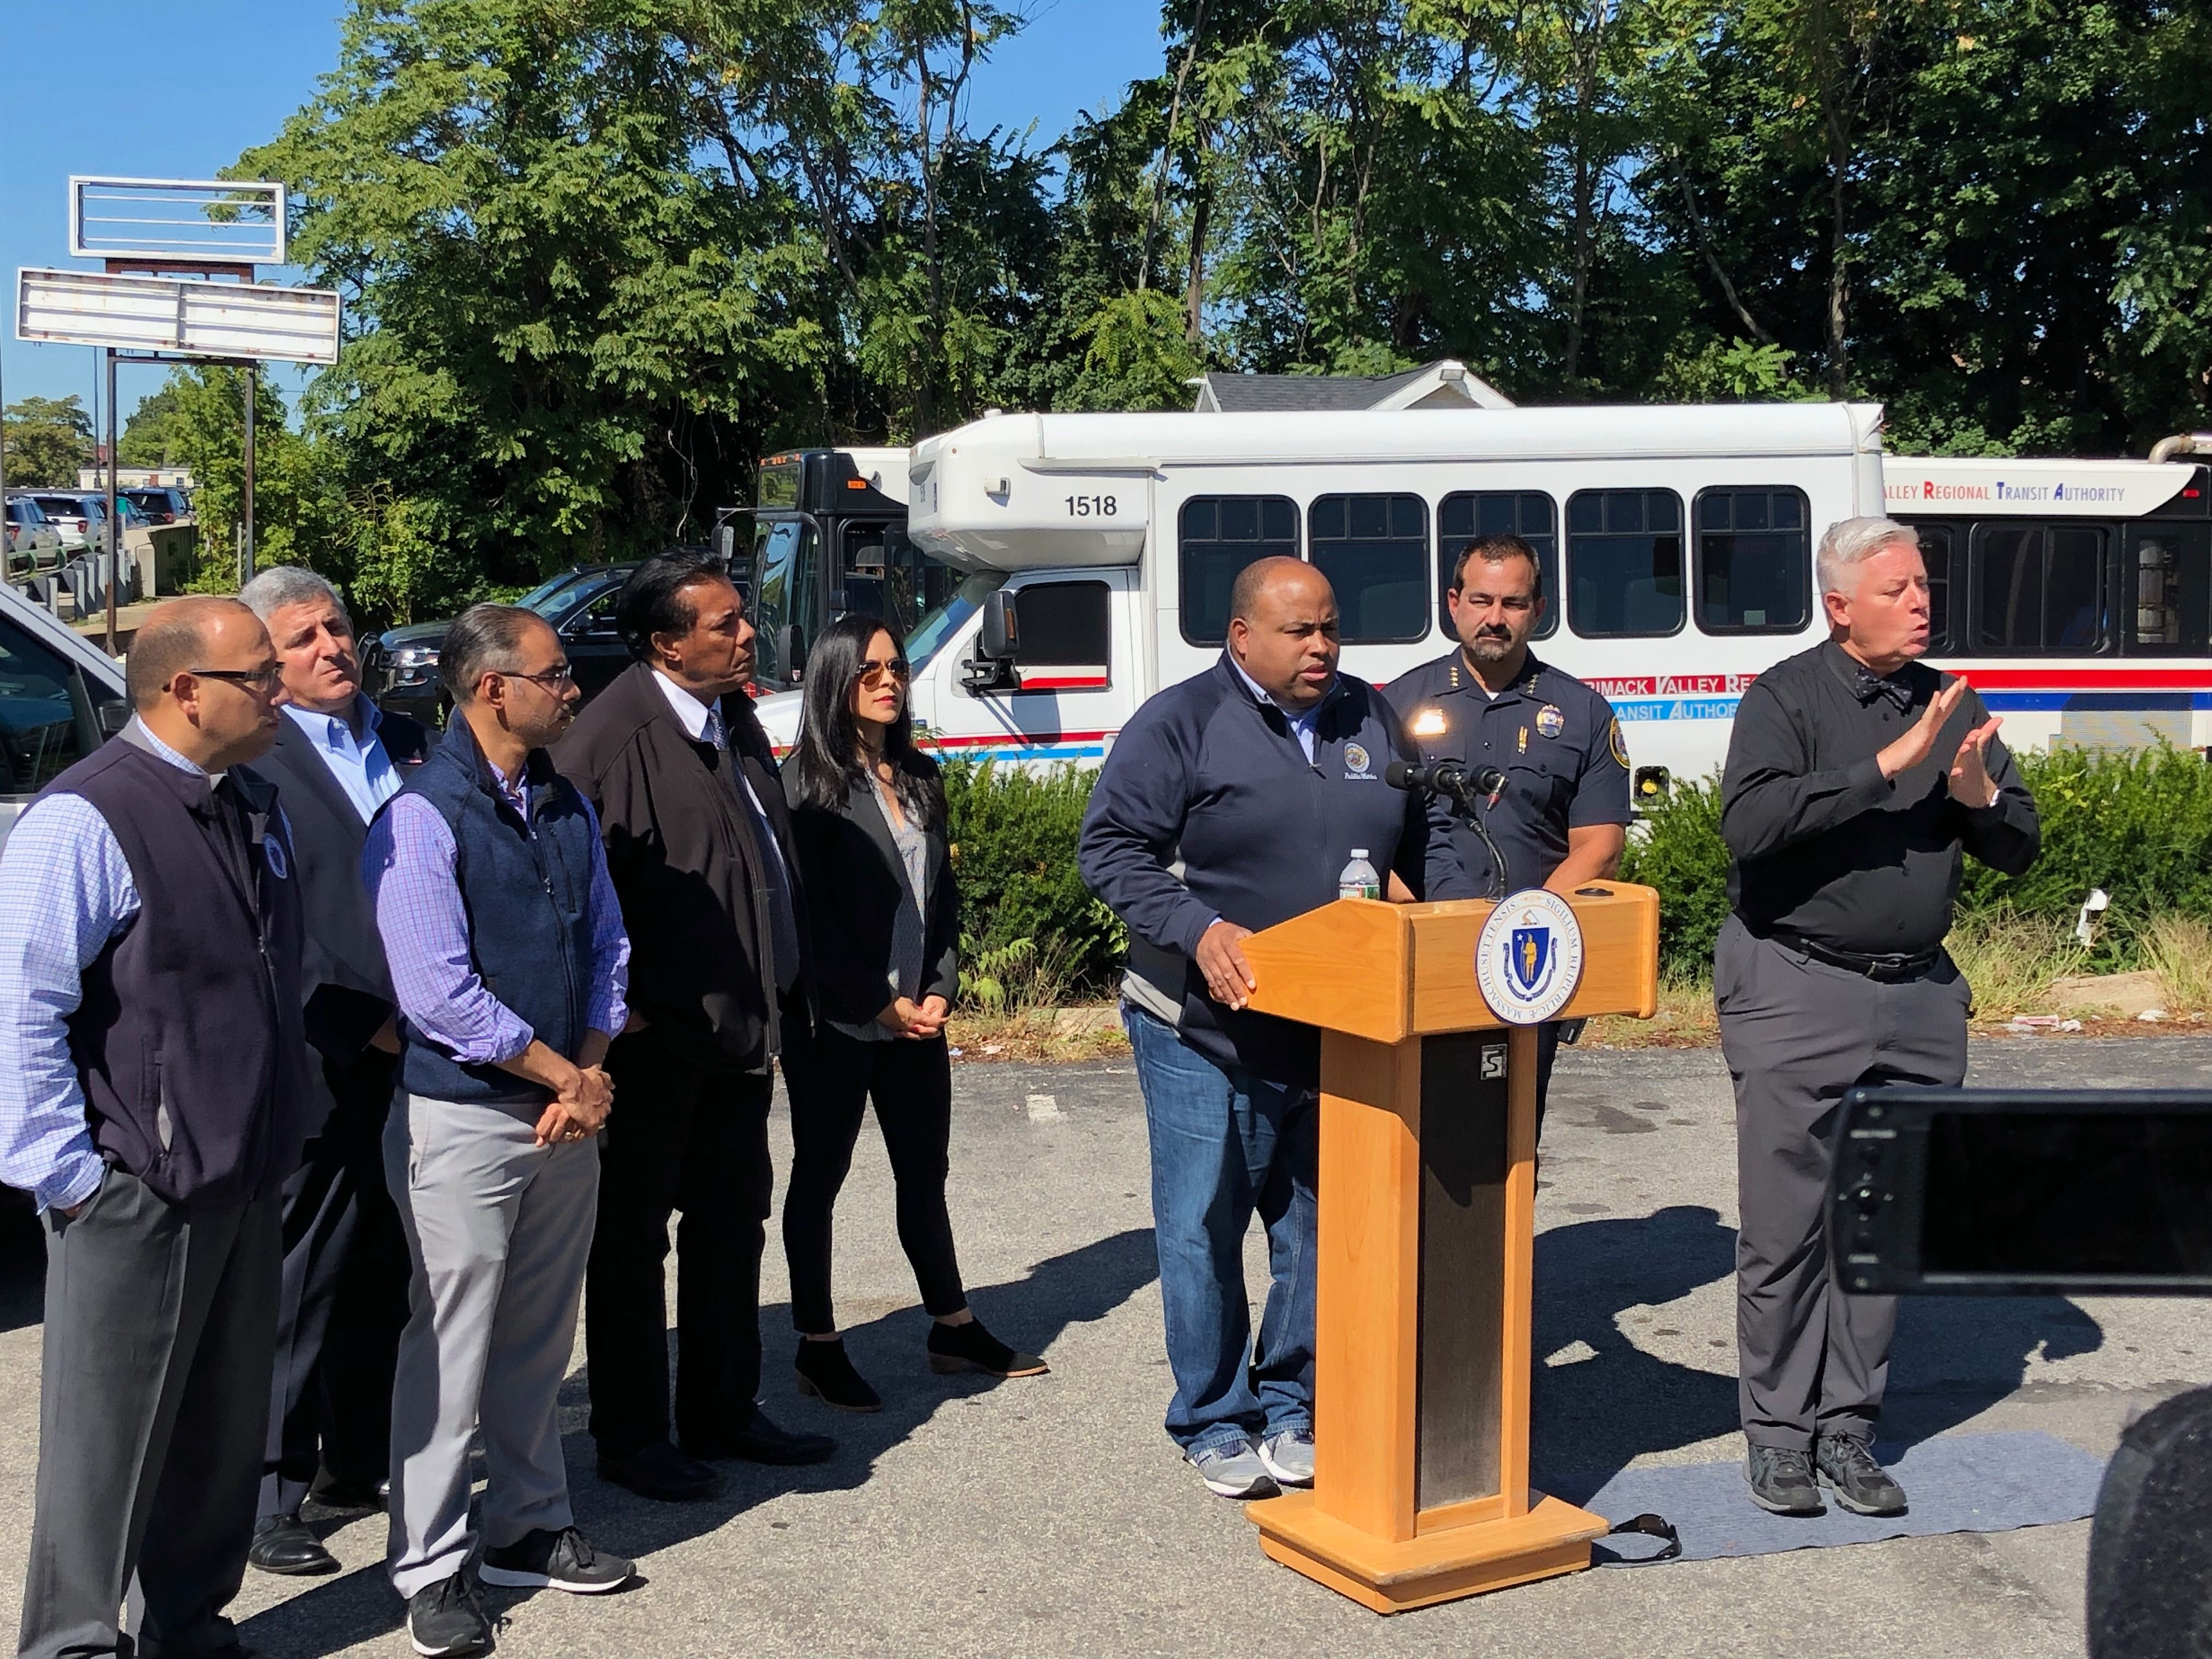 'None of that is true,' Lawrence Mayor Daniel Rivera says of shooting rumors following evacuation of high school